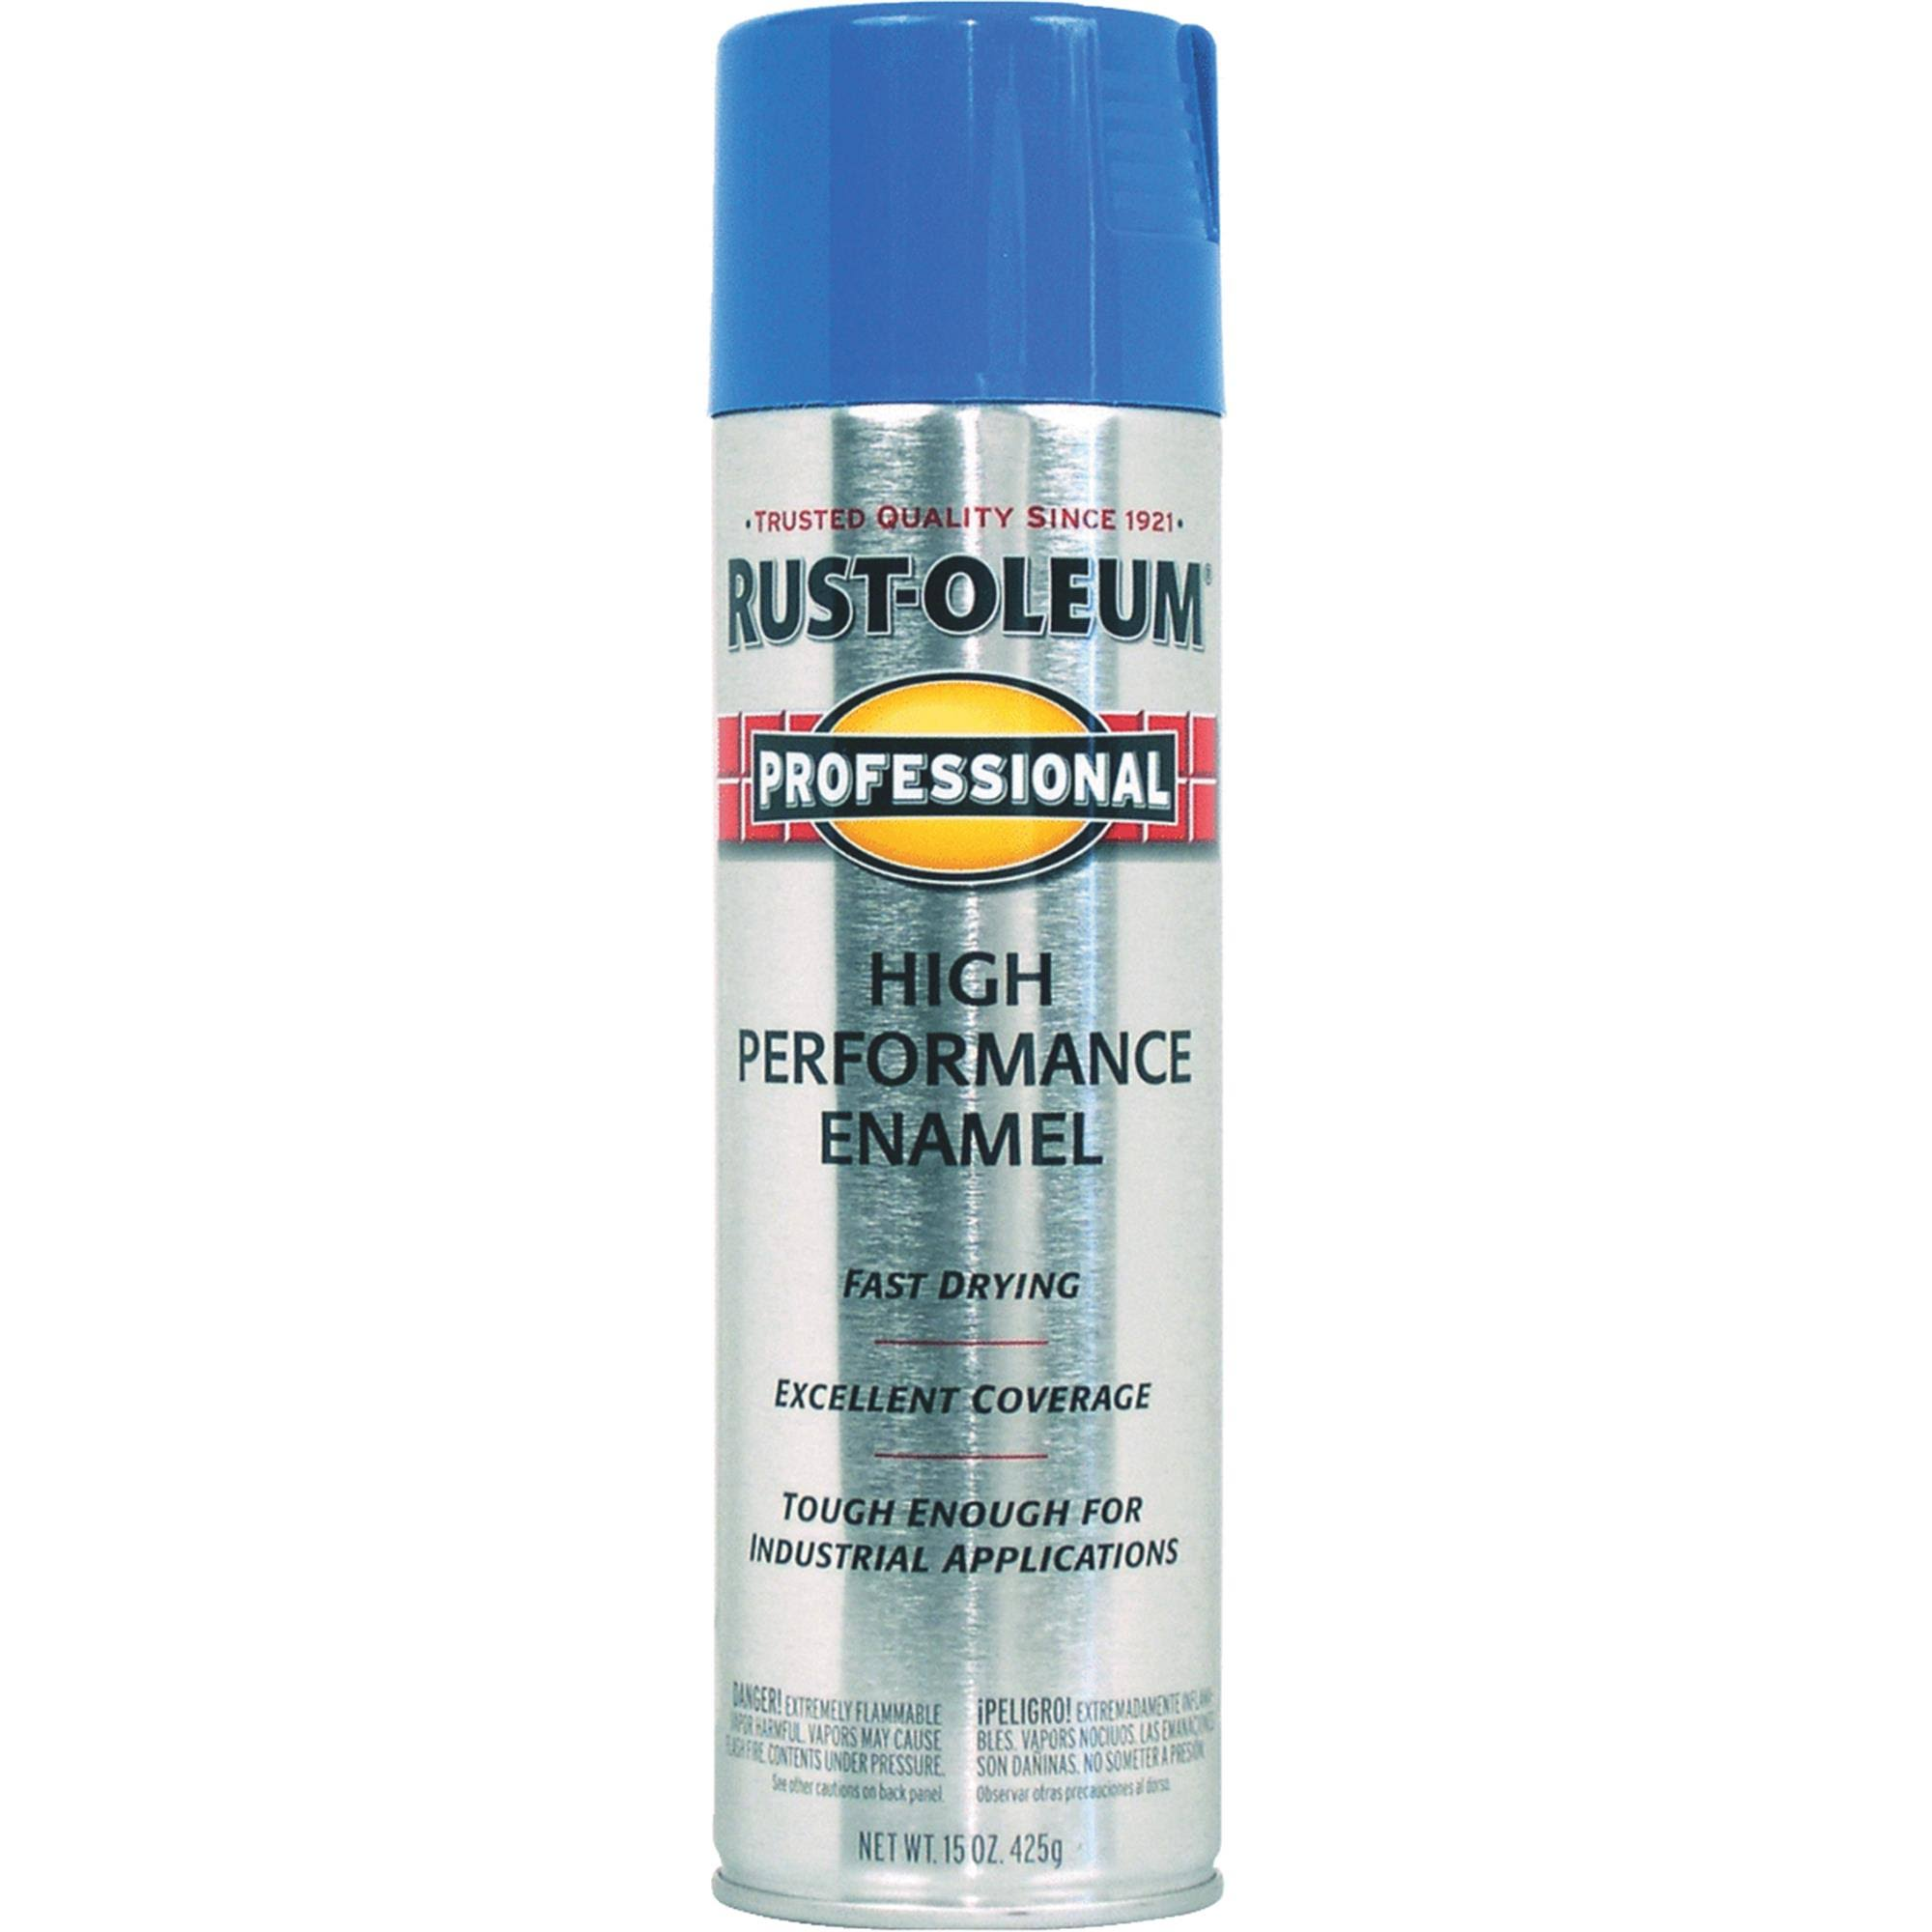 Rust-Oleum Professional High Performance Enamel Spray Paint - Safety Blue